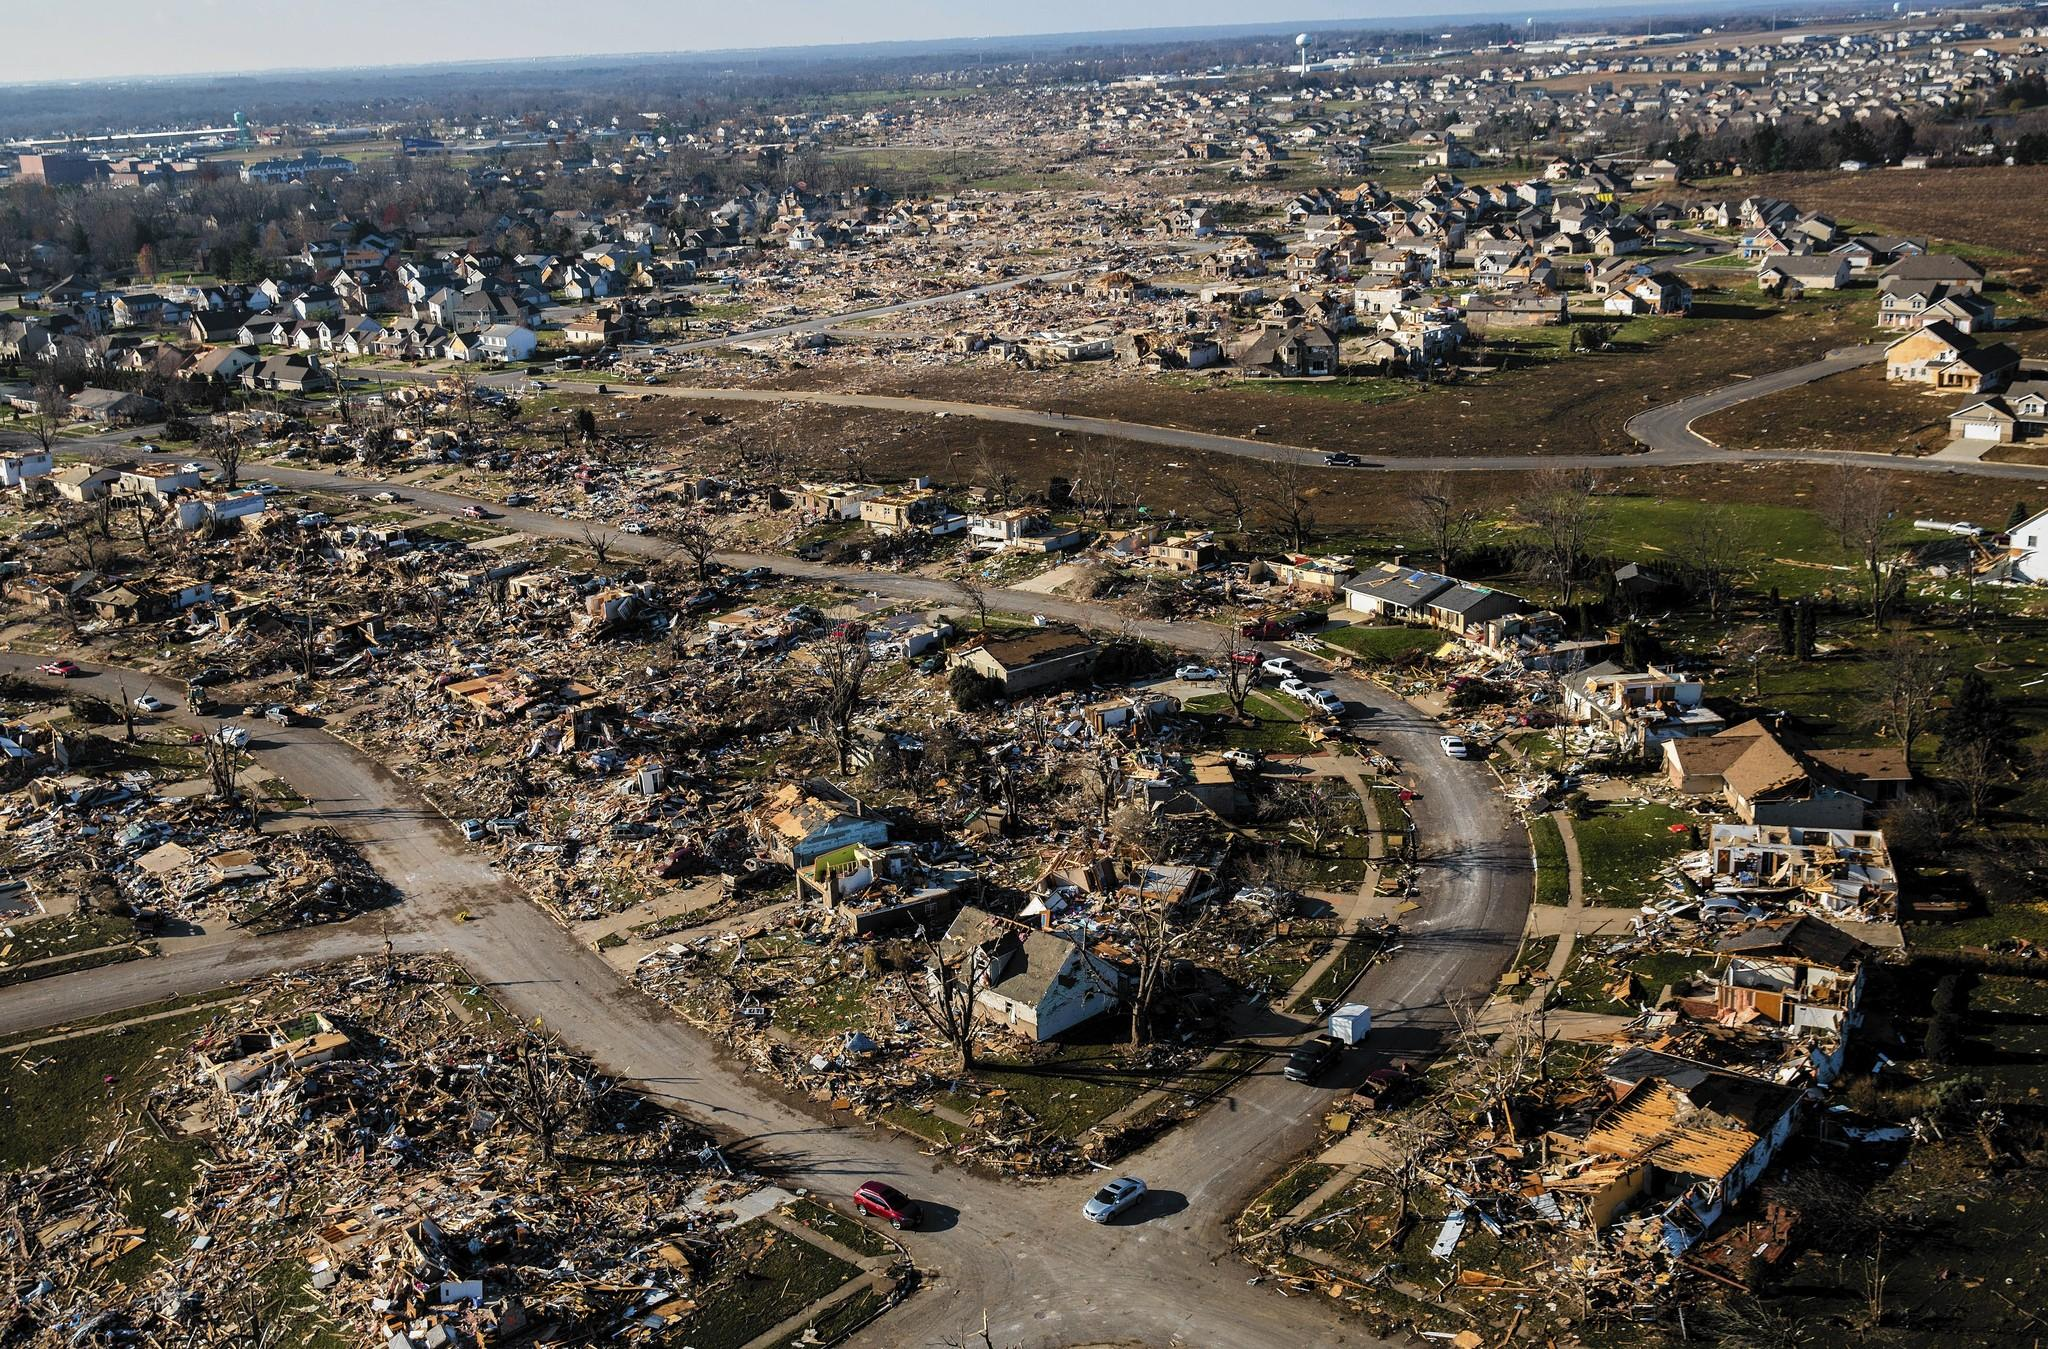 Washington, Ill., which became nationally known after it was hit by a tornado six weeks ago, is older than Chicago.